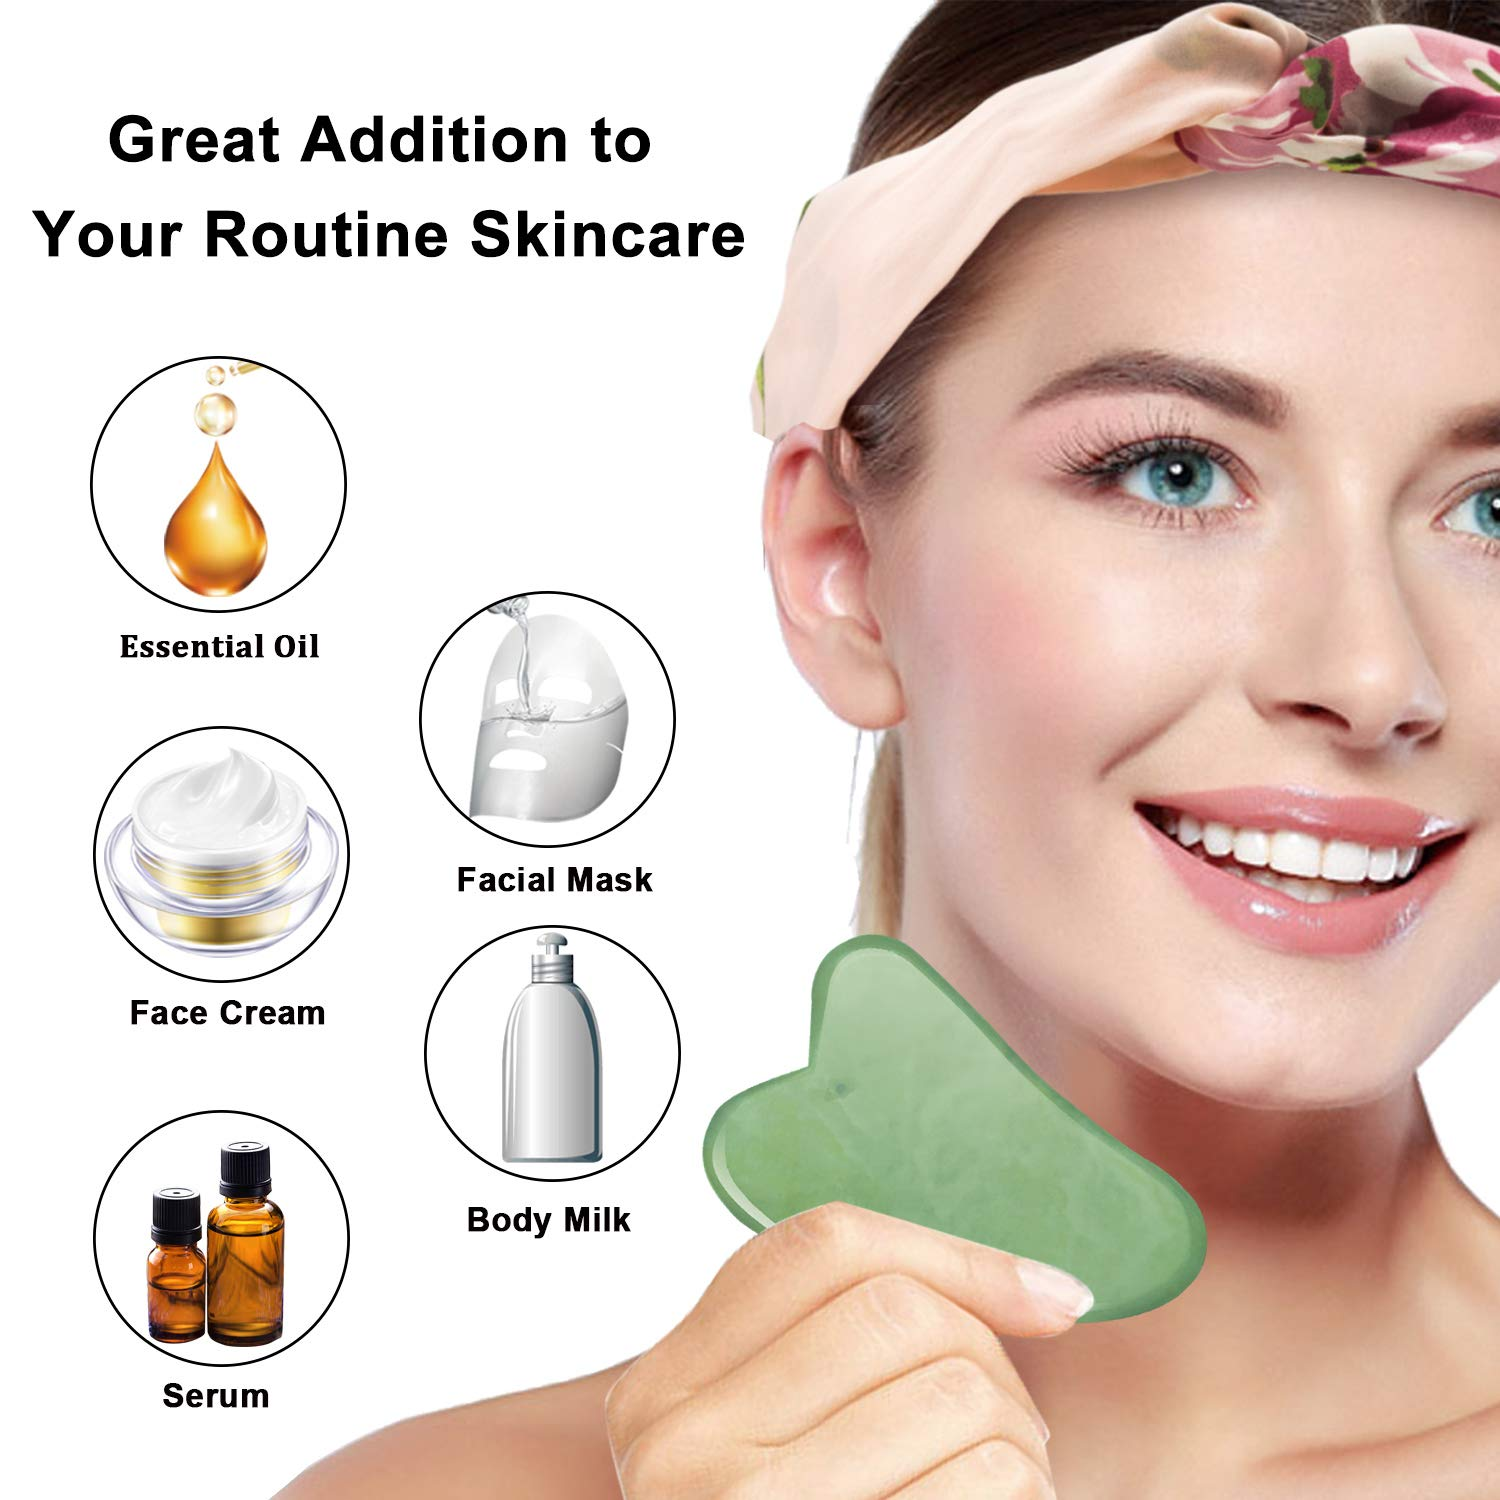 Jade Roller for Face & Natural Rose Quartz Roller & Gua Sha Scraping Tool, 3 in 1 Anti-Aging Jade Face Roller Massager for Cheeks Slimmer, Skin Tightening, Rejuvenate Skin